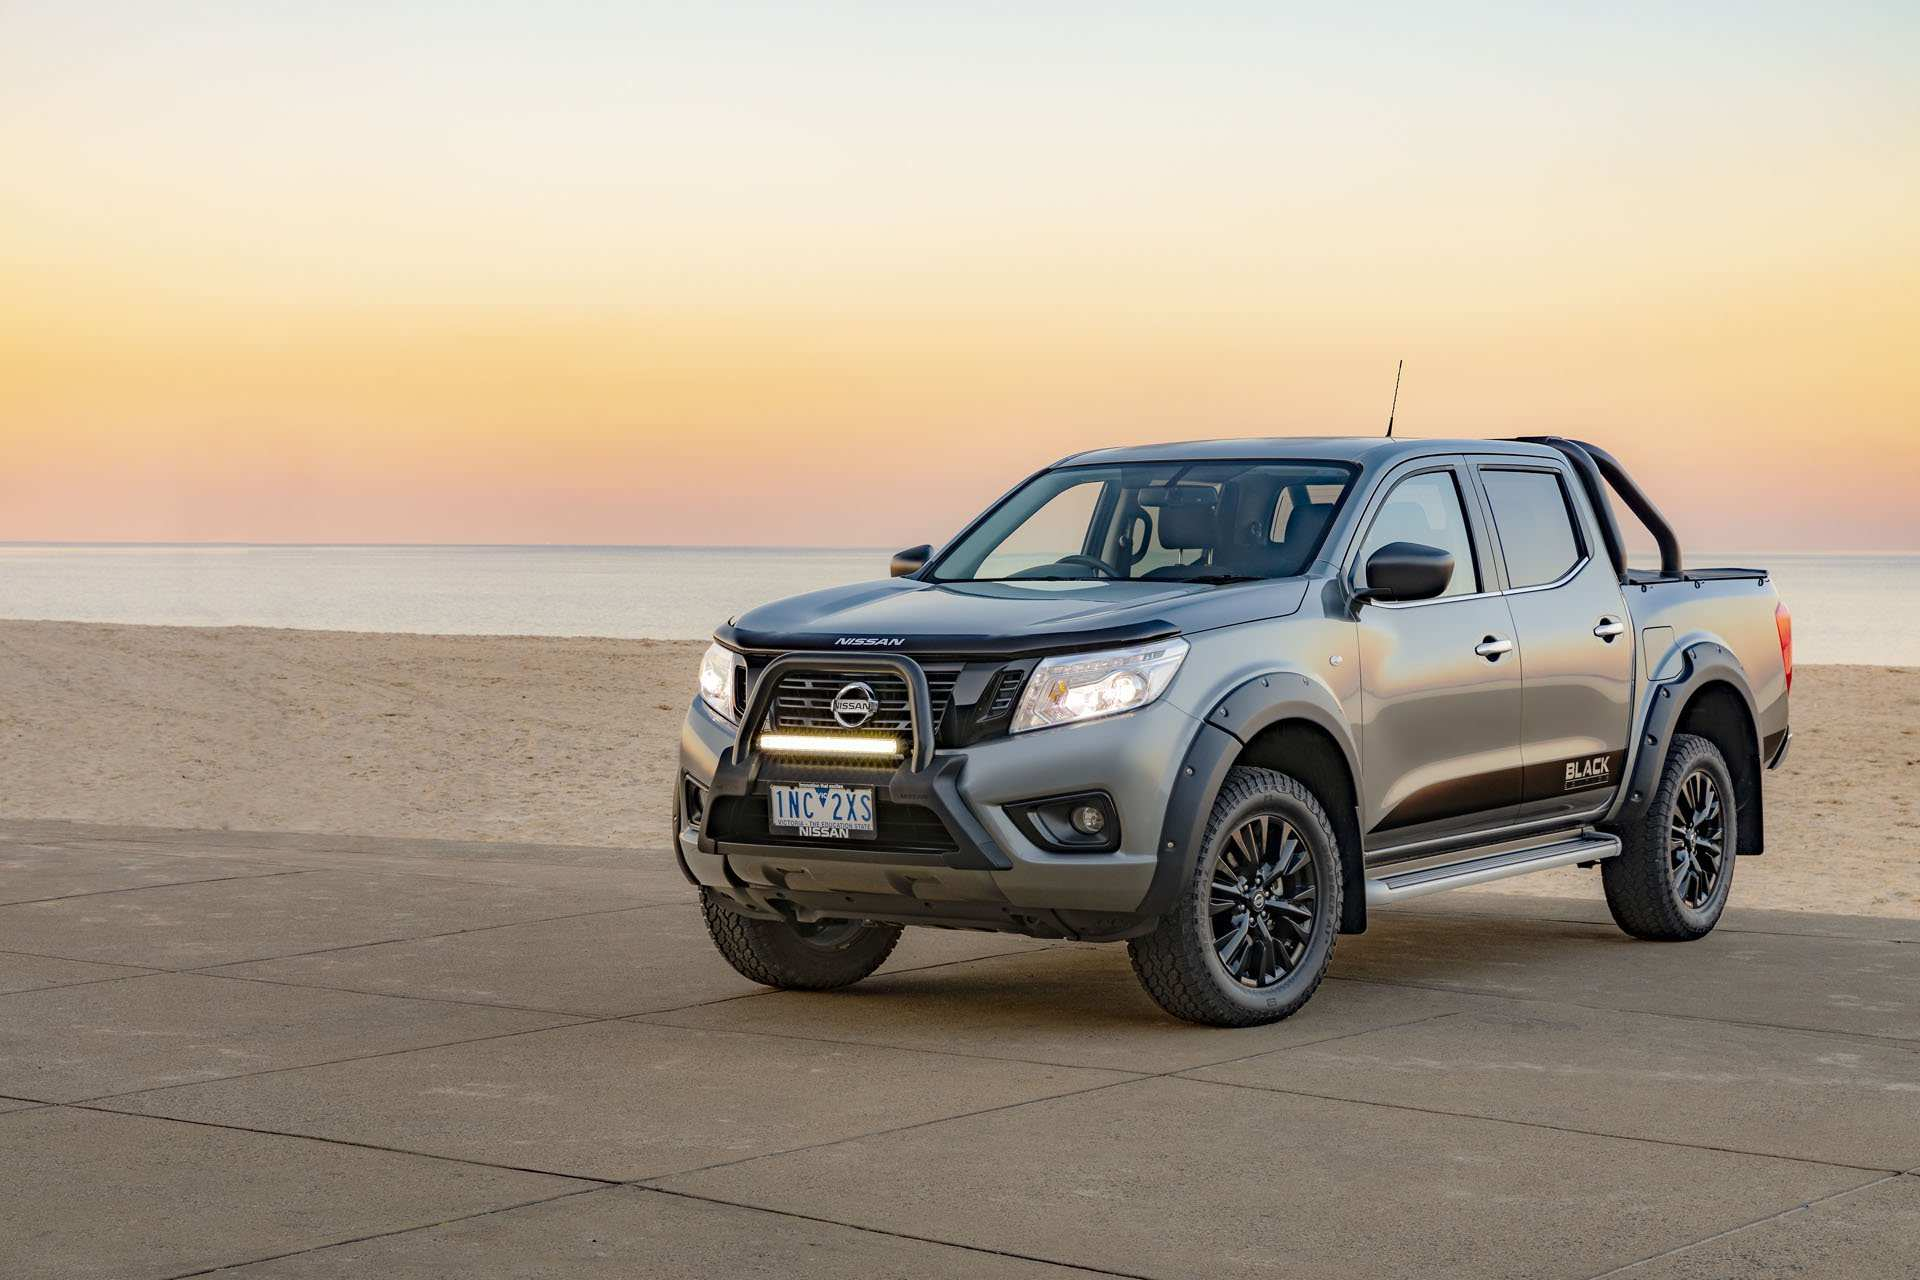 59 The Best 2020 Nissan Navara Specs And Review